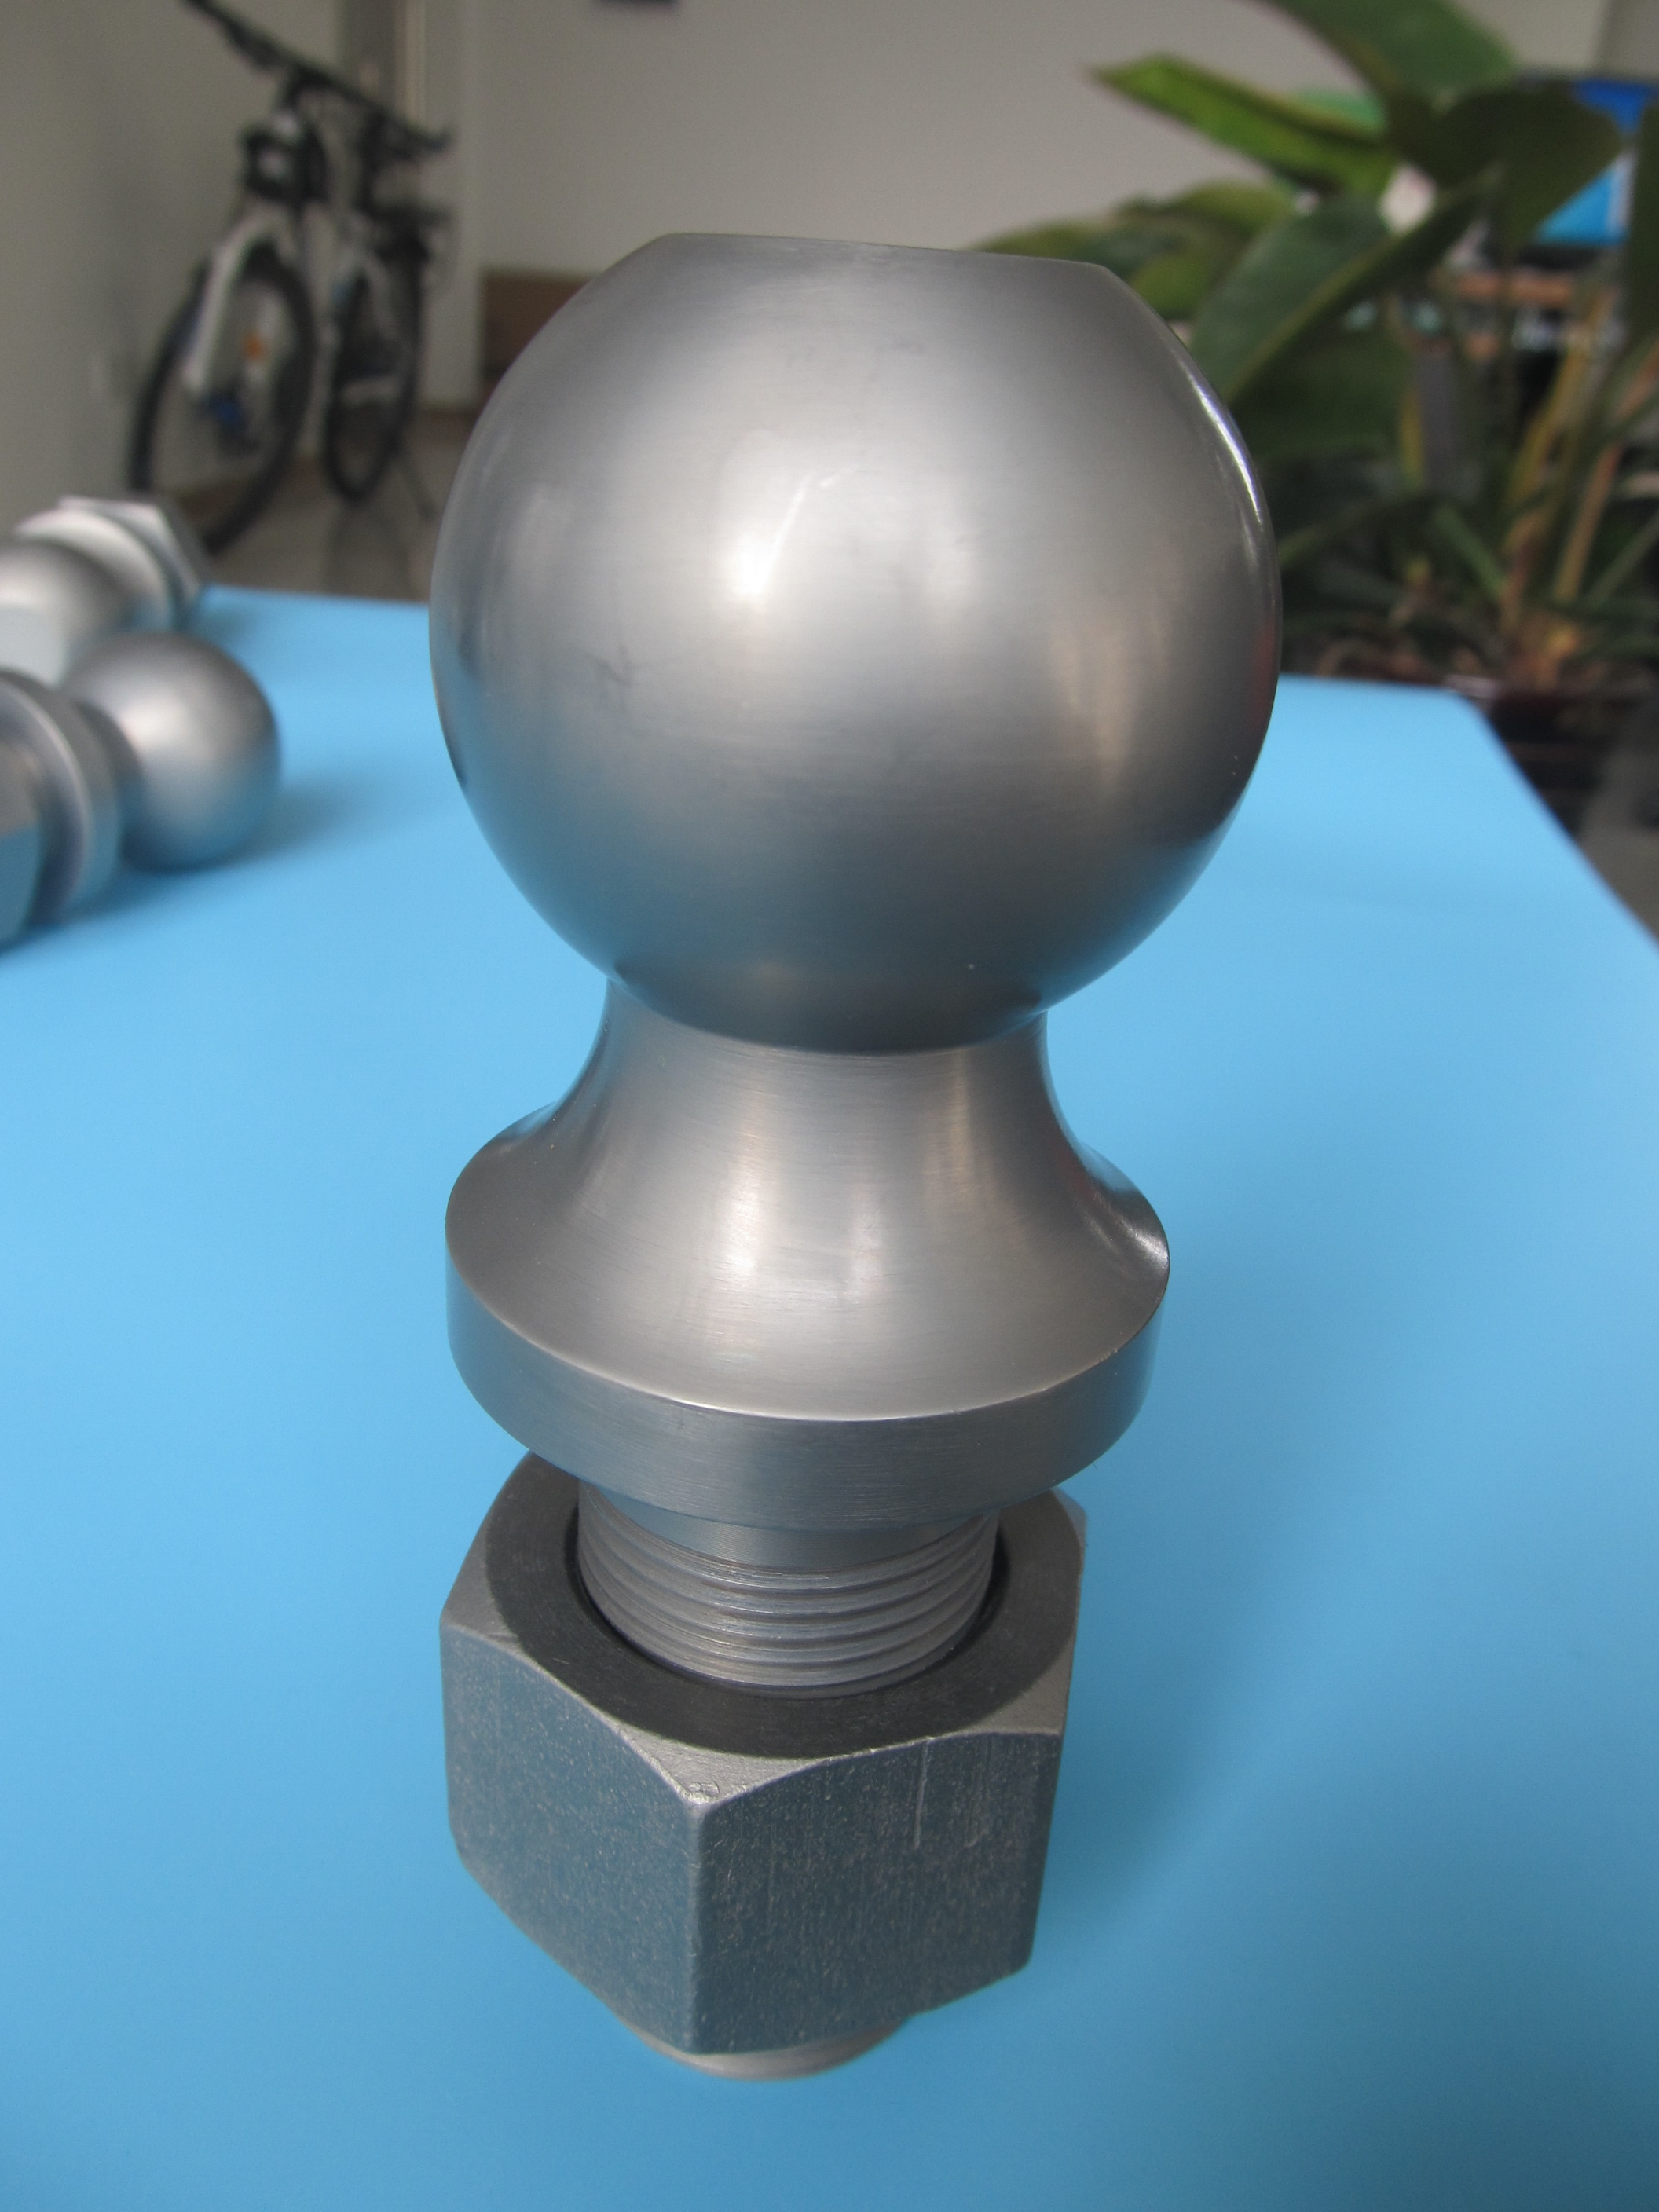 Trailer ball ,hitch ball ,trailer coupler sample manufactured by Qingdao Haozhifeng Machinery Co.,Ltd